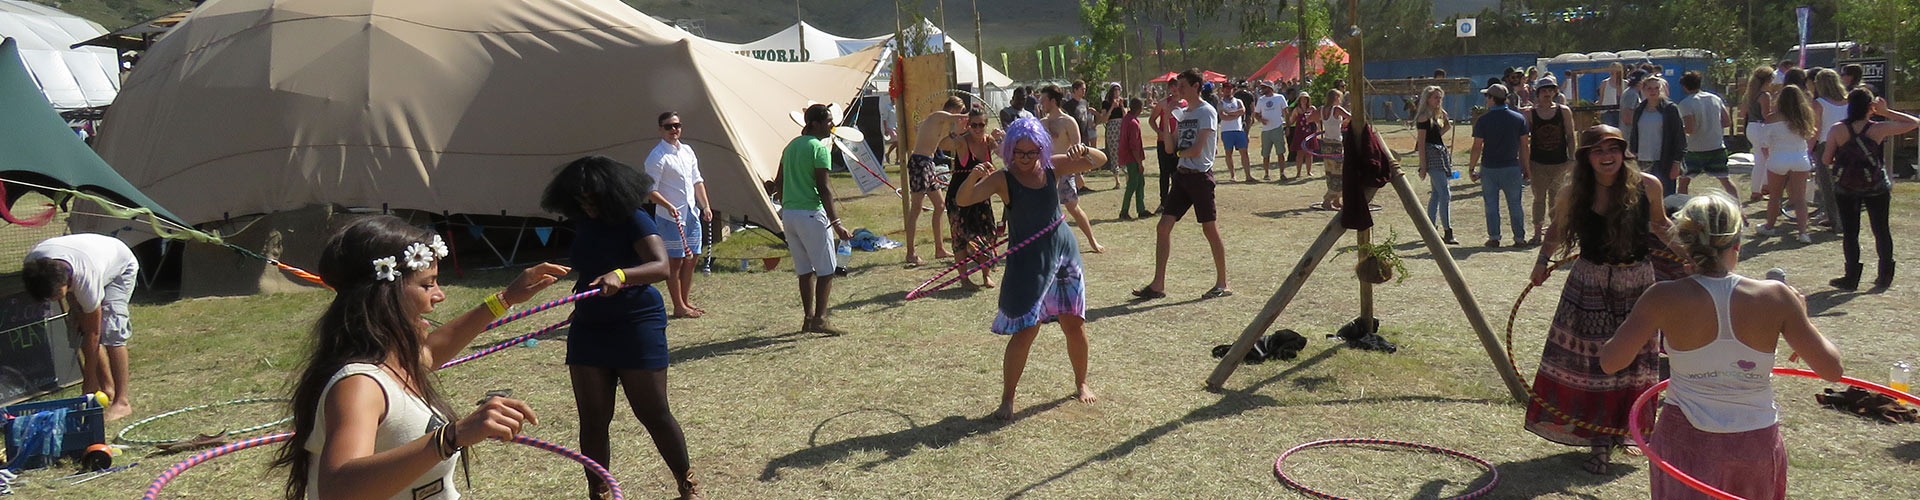 Hoop Flow Love Flowground for Festivals Cape Town